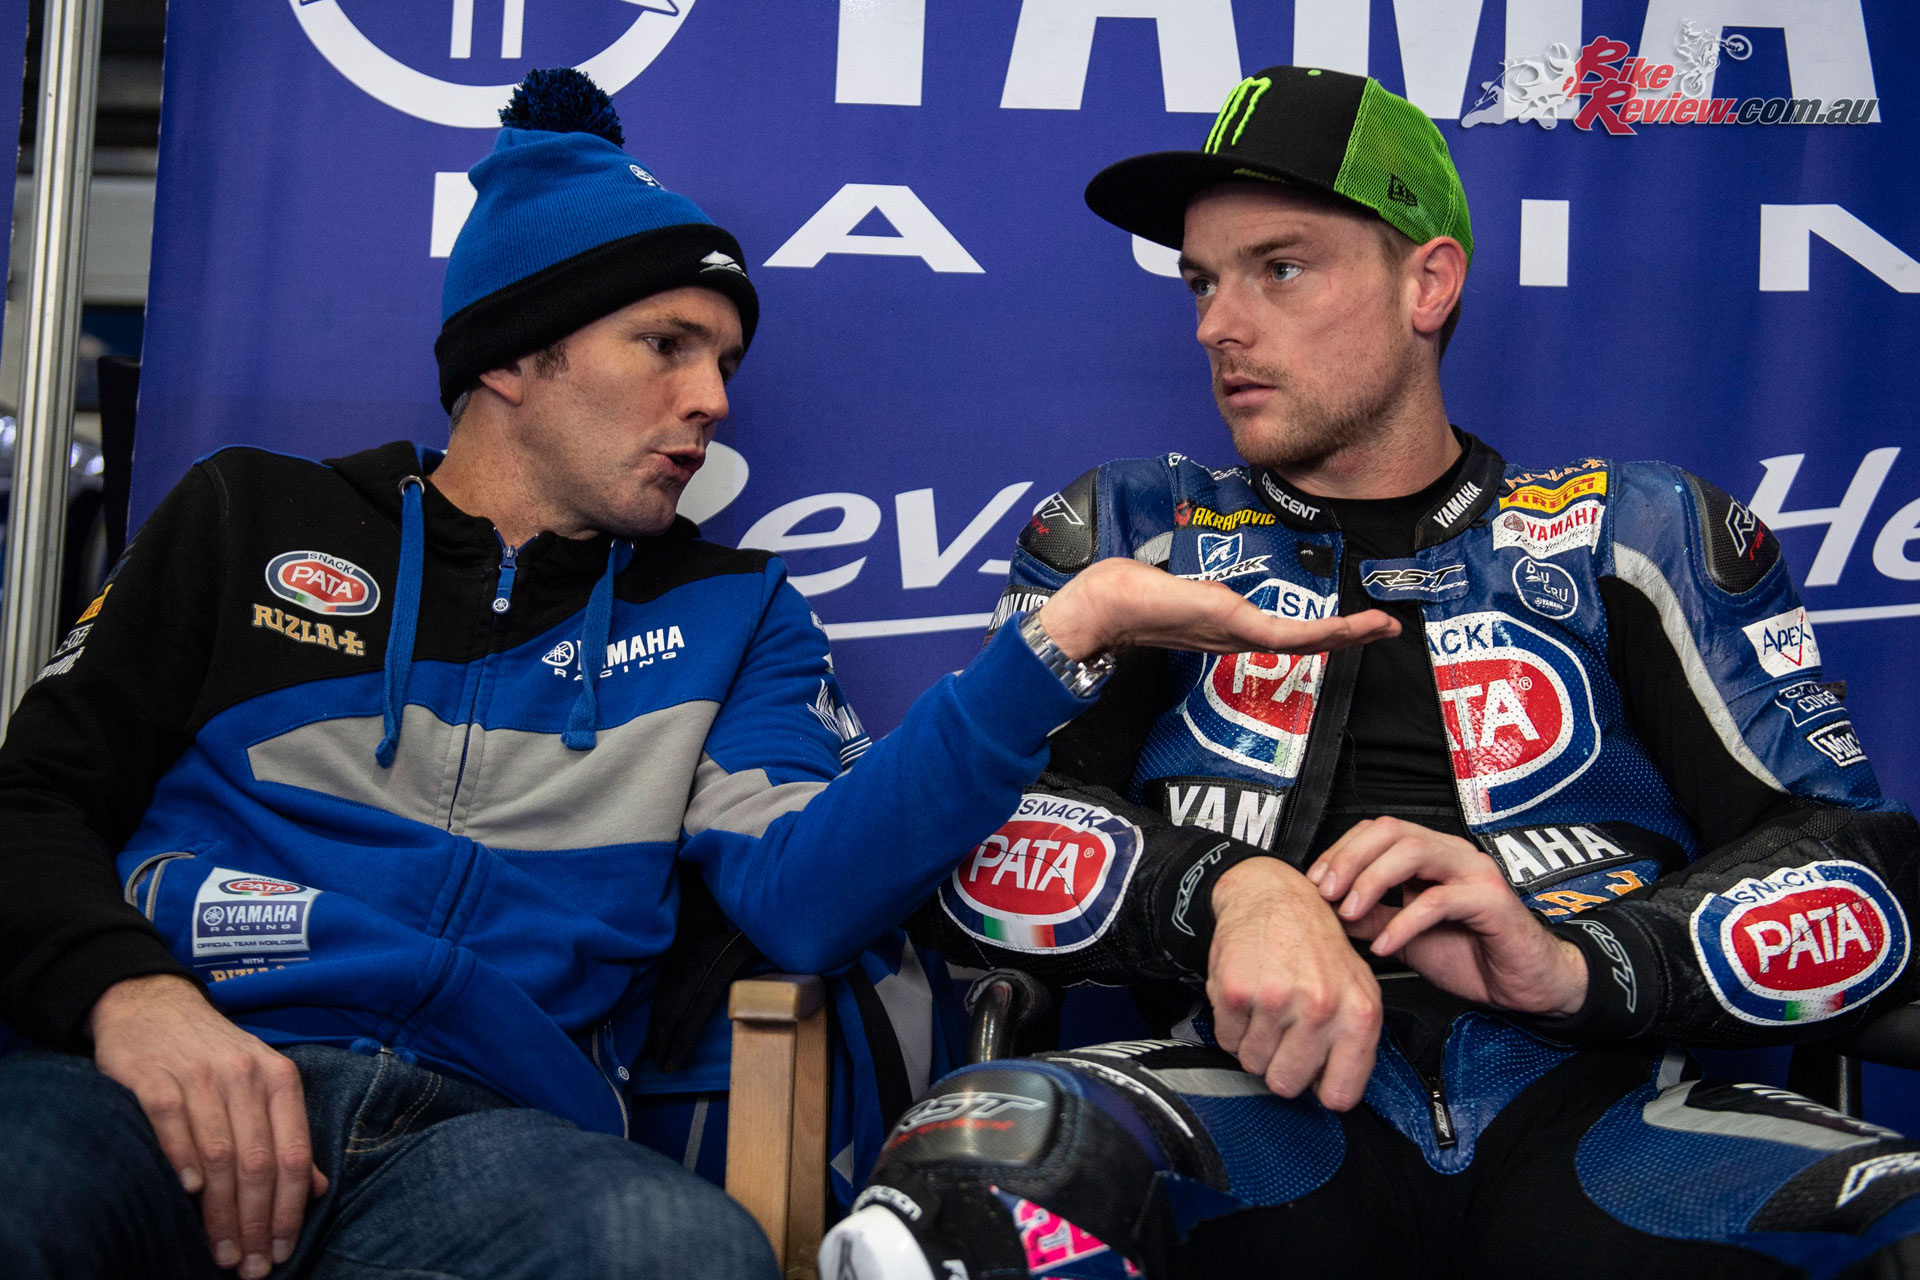 Andrew Pitt and Alex Lowes at Jerez back in 2018